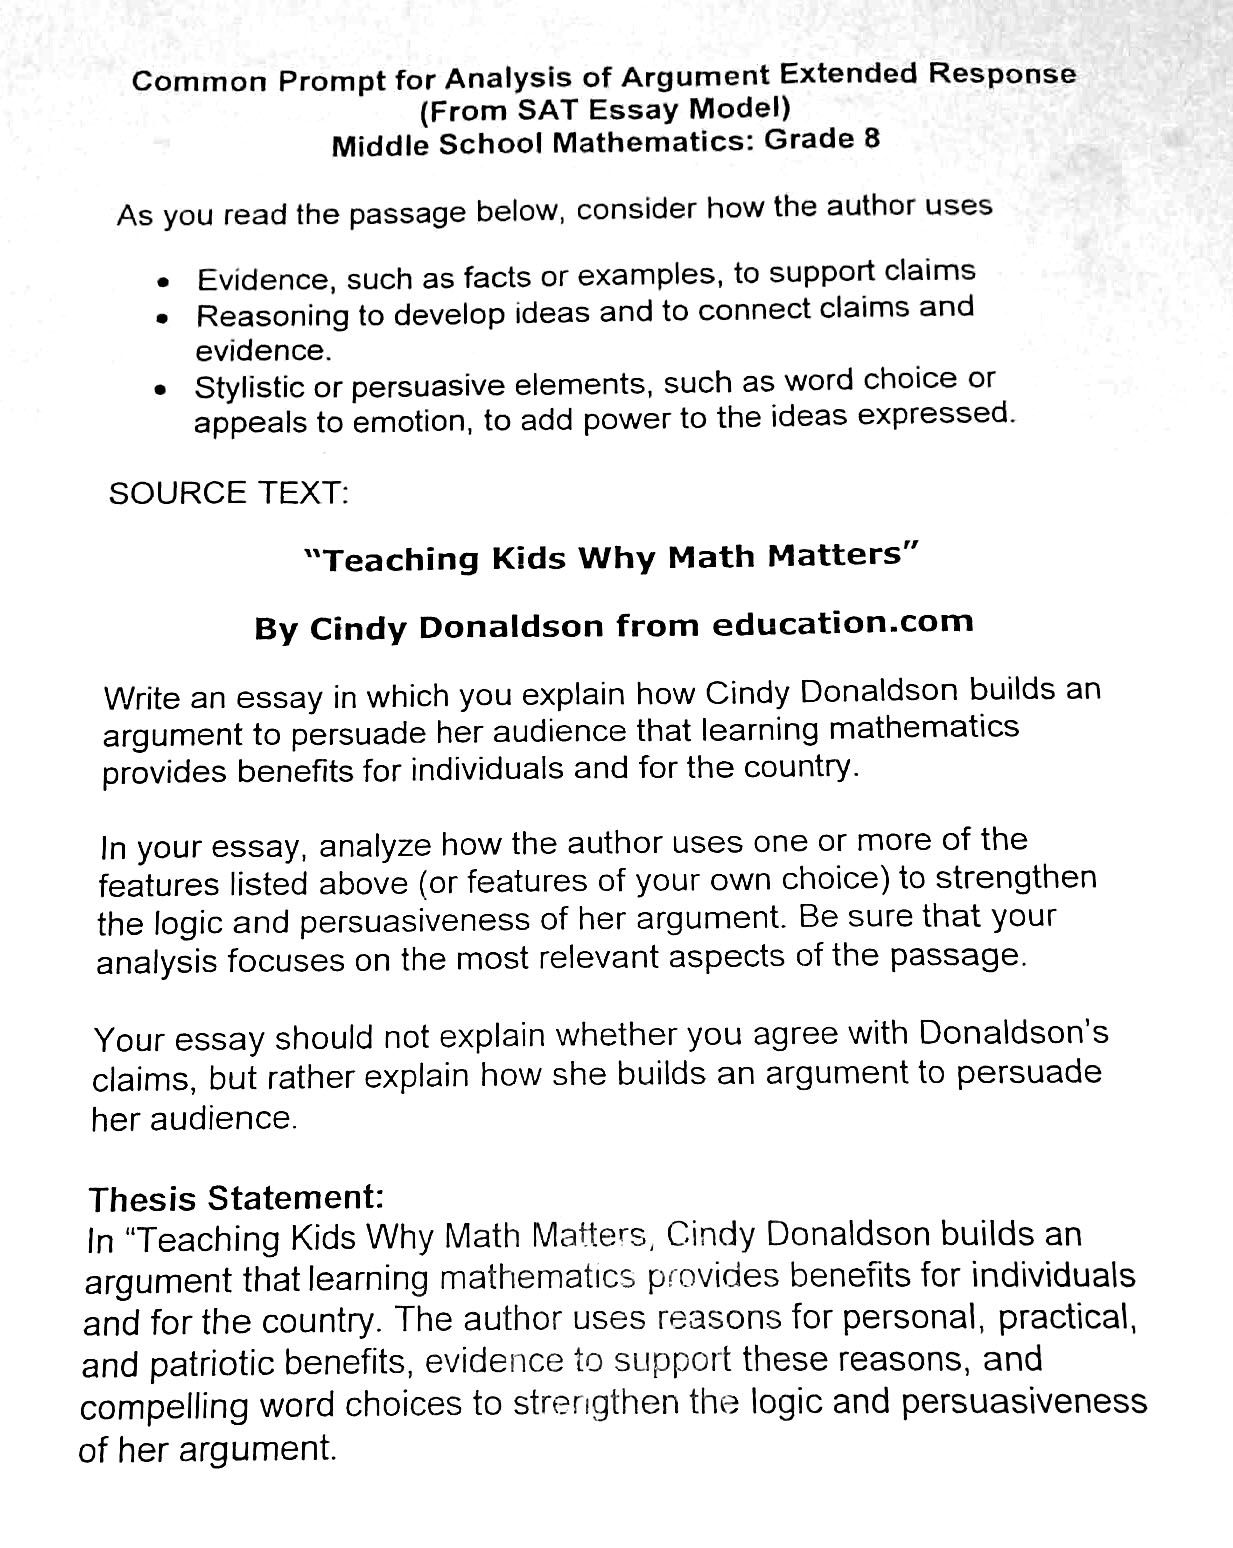 Wac One Teacher S Journey Writing Curriculum Math Essay On Education History Of Mathematic Topics Topic